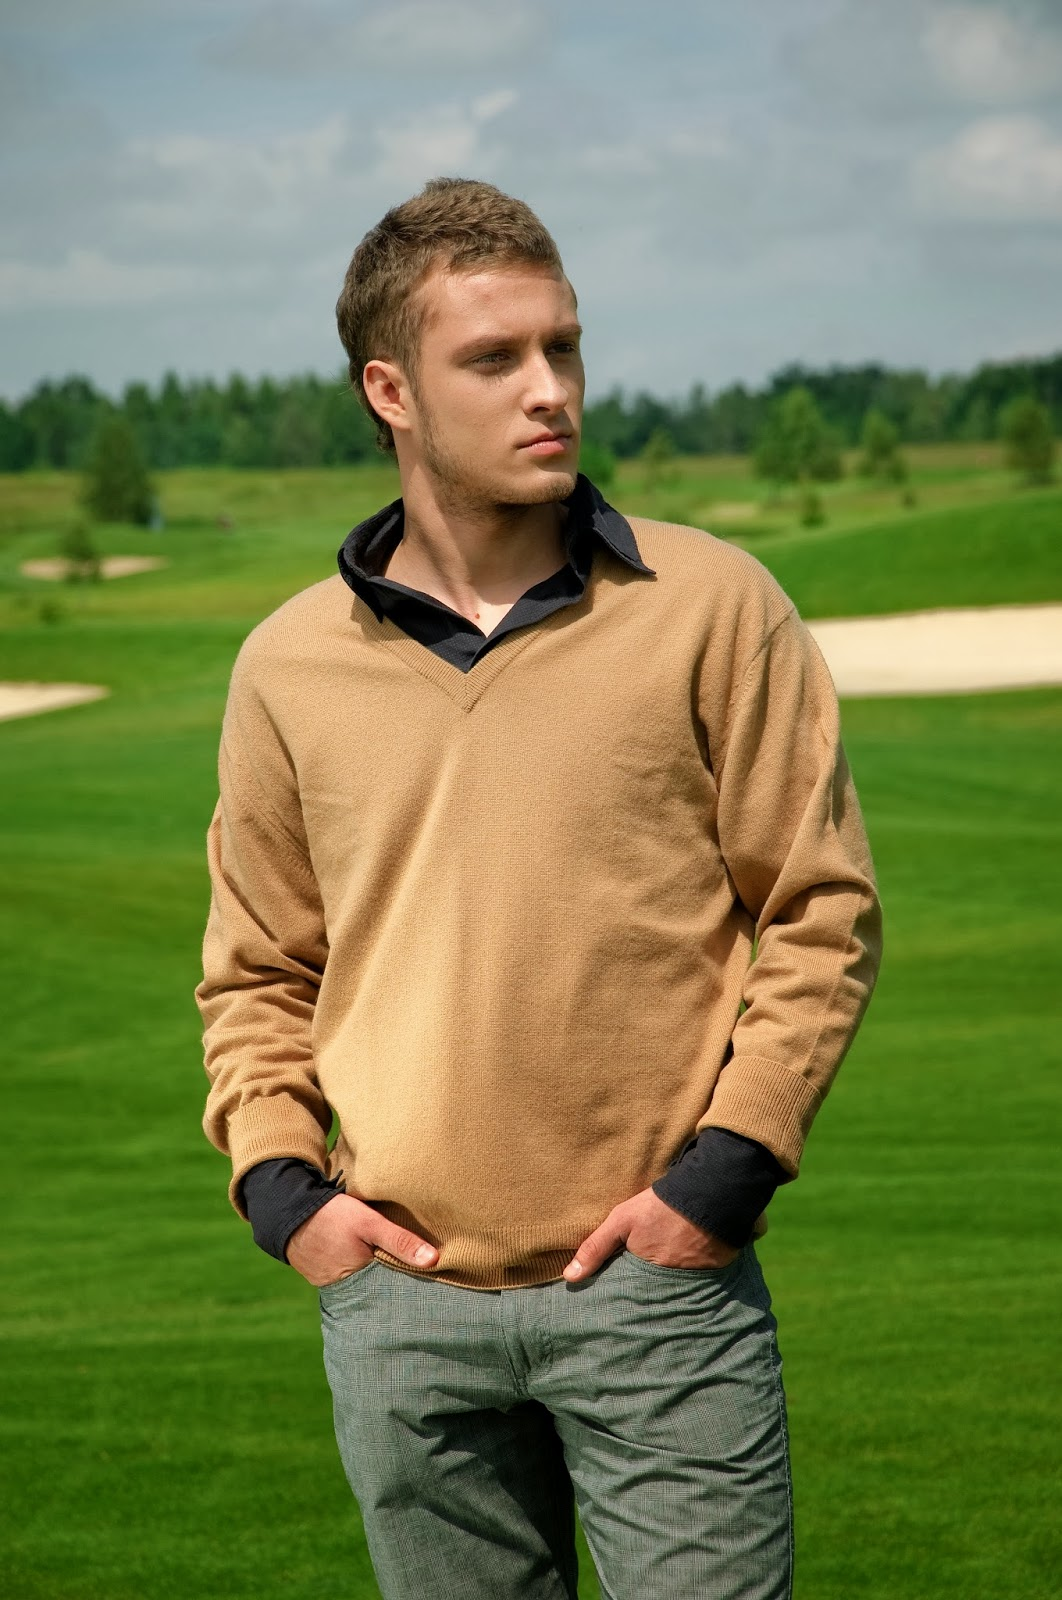 Golfing jumpers